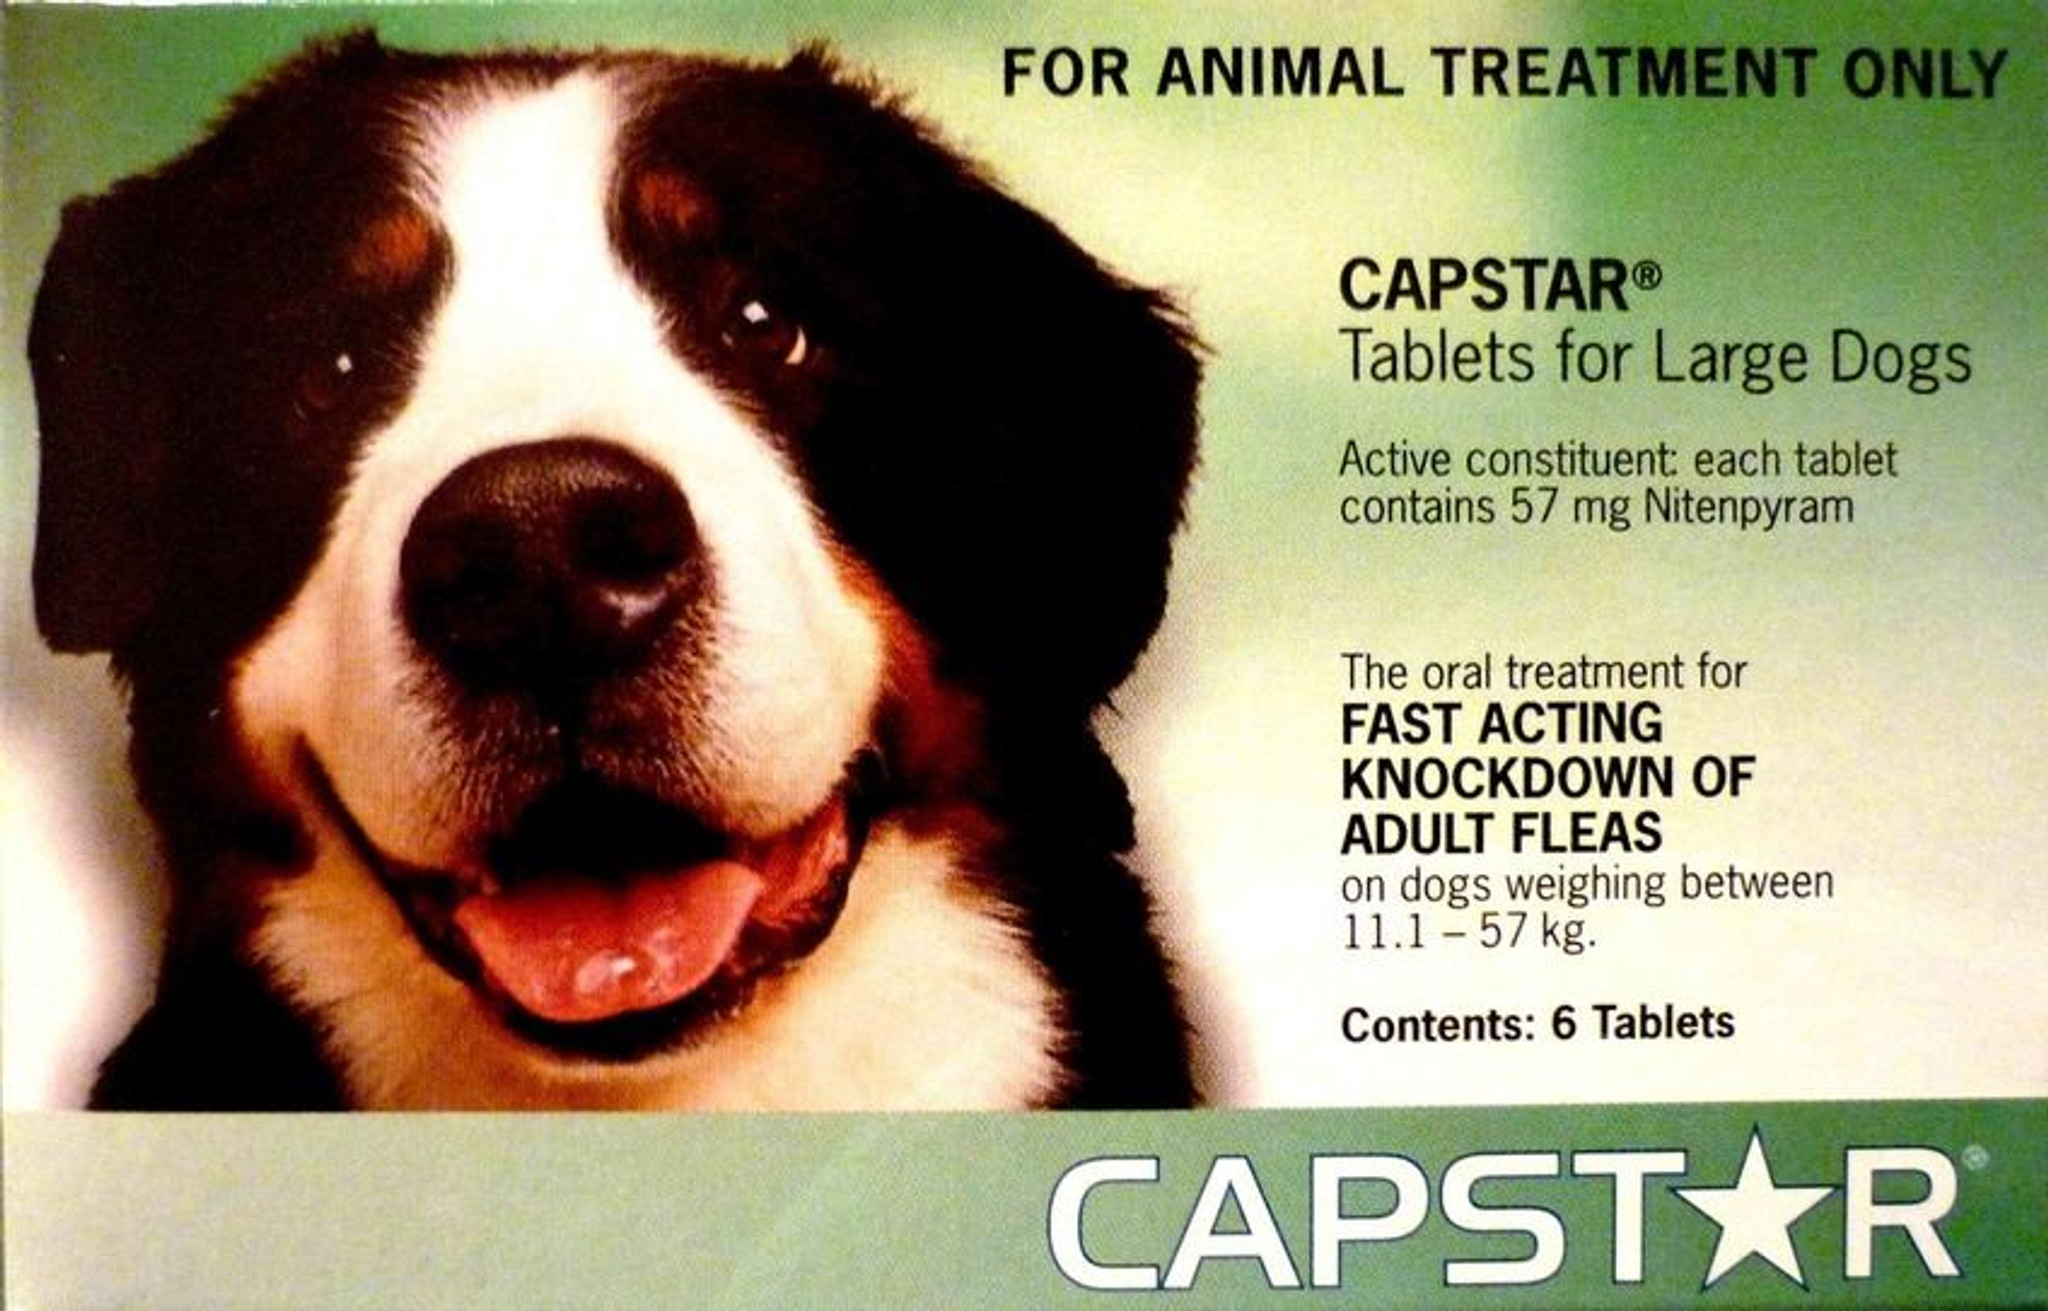 Capstar Flea Tablets For Dogs 11 1 57kg 6 Tablets